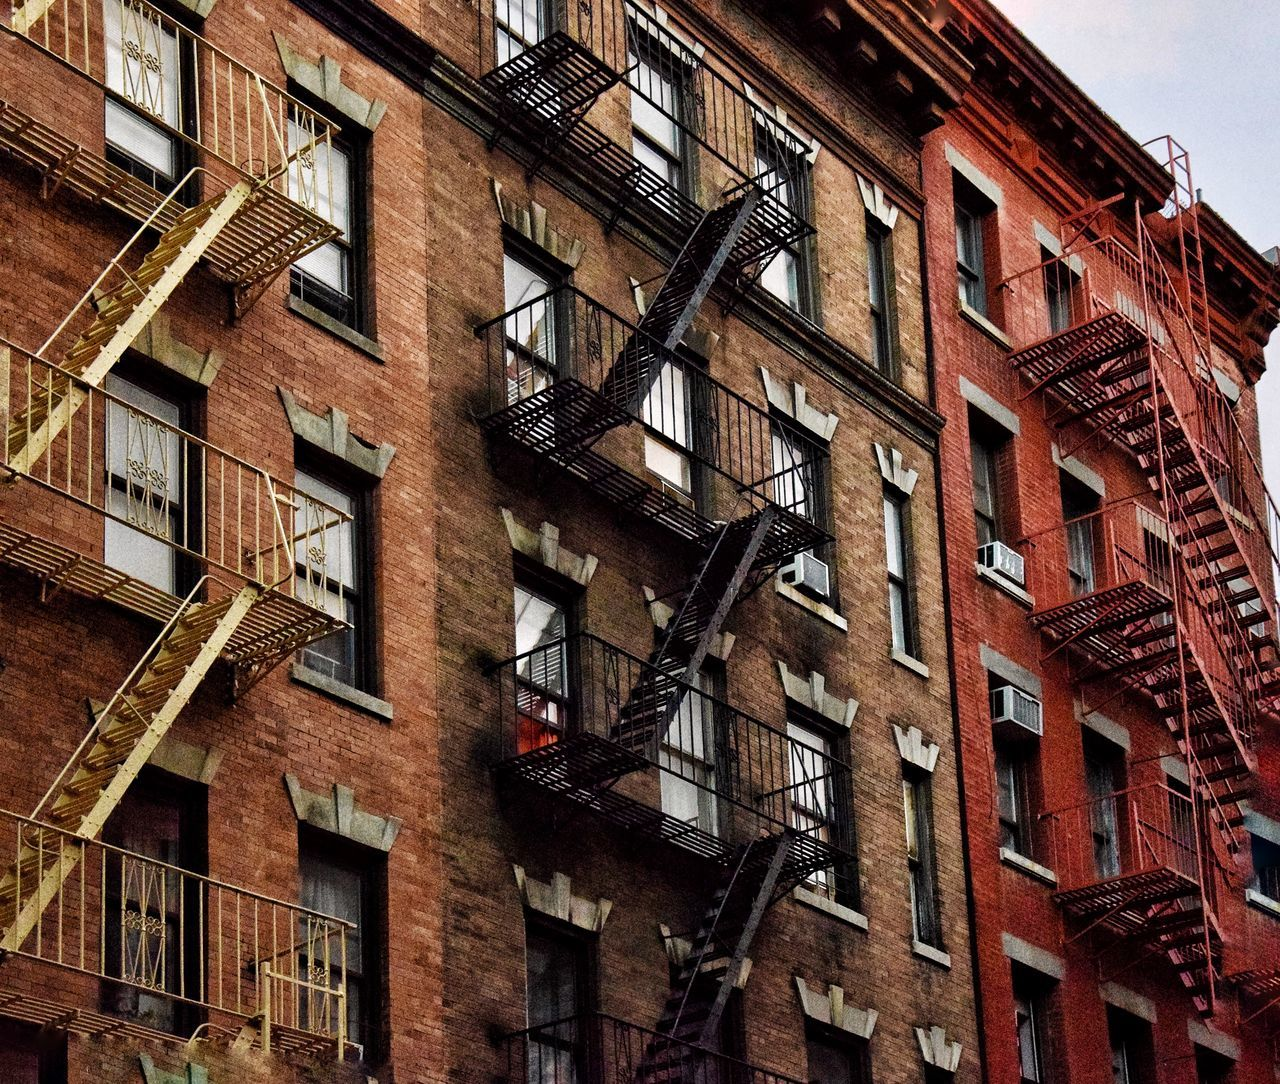 architecture, building exterior, fire escape, built structure, low angle view, window, steps and staircases, staircase, emergencies and disasters, safety, urgency, steps, no people, outdoors, day, sky